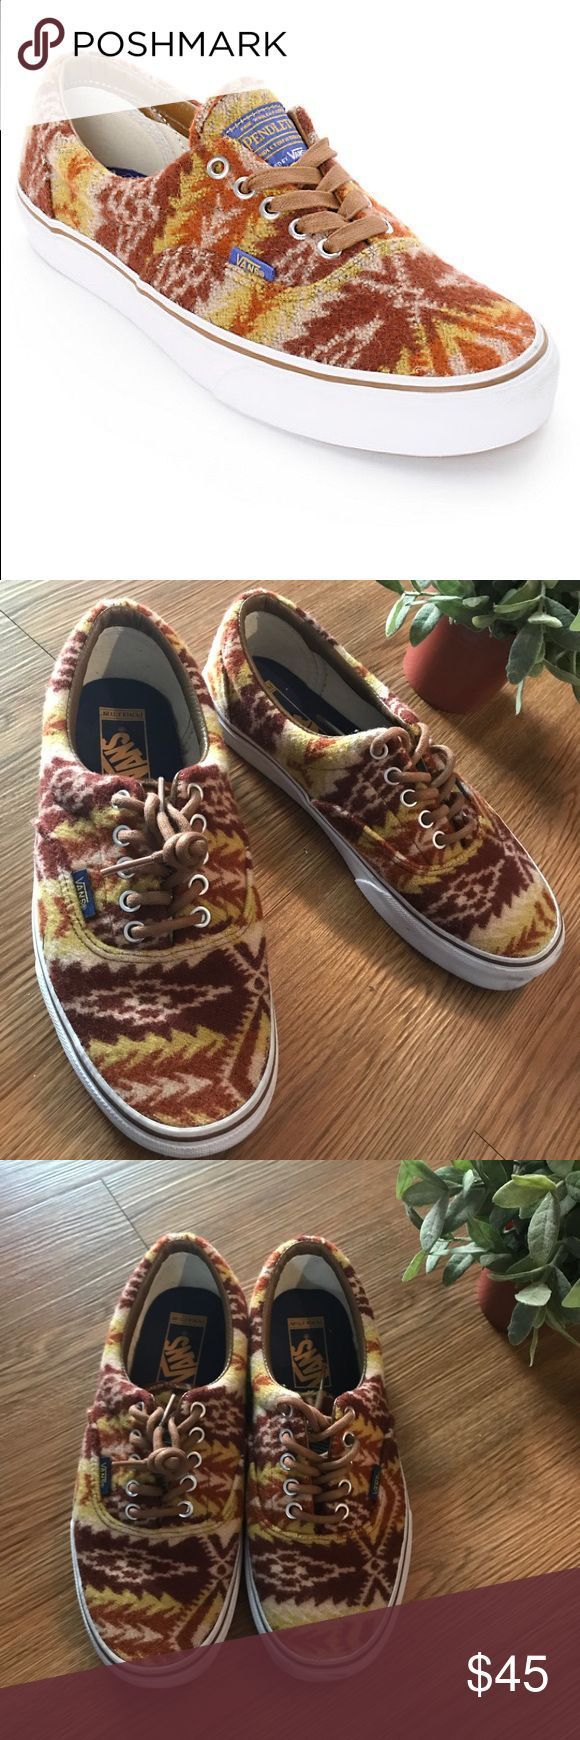 Pendleton Vans Tribal Print Shoe The Vans Era Athletic feature a Canvas upper with a Round Toe. The Man-Made outsole lends lasting traction and wear. Color: (pendleton) Tribal/tan. Gender nuteral size 7.5 mens Size 9 womens Great pre loved condition Pendleton Shoes Sneakers